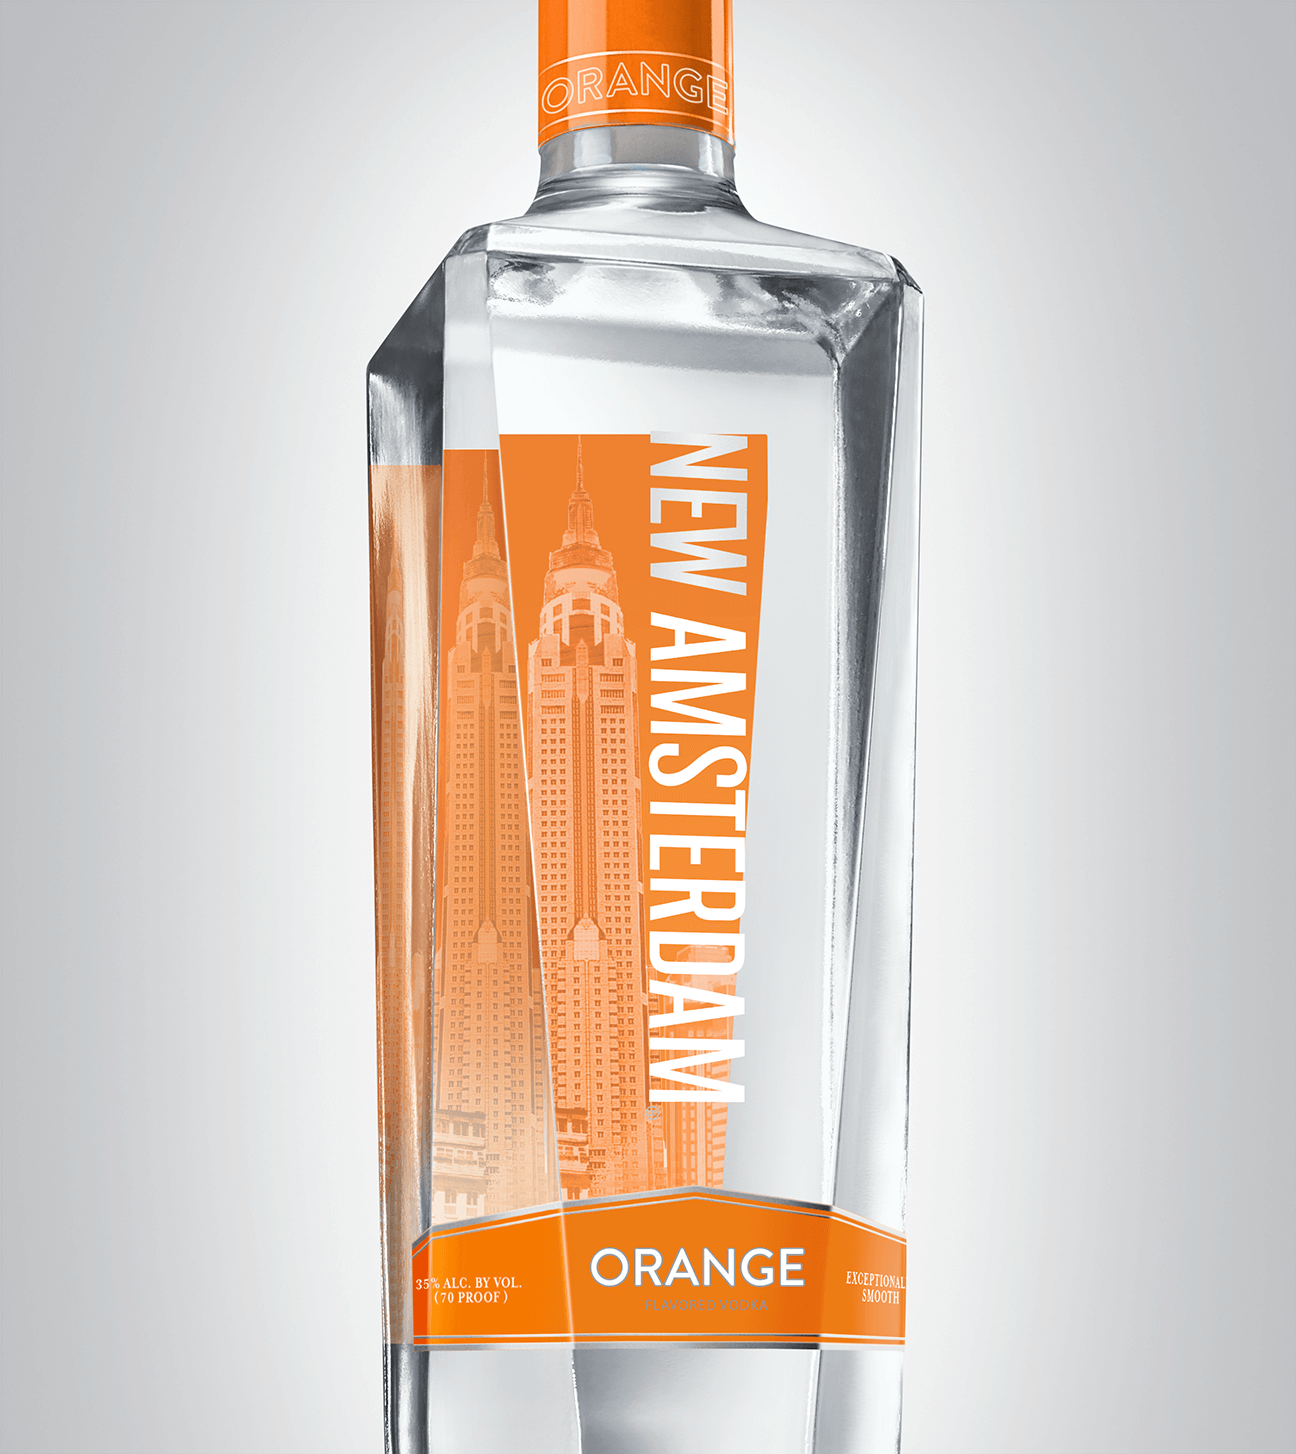 Bottle of New Amsterdam Orange